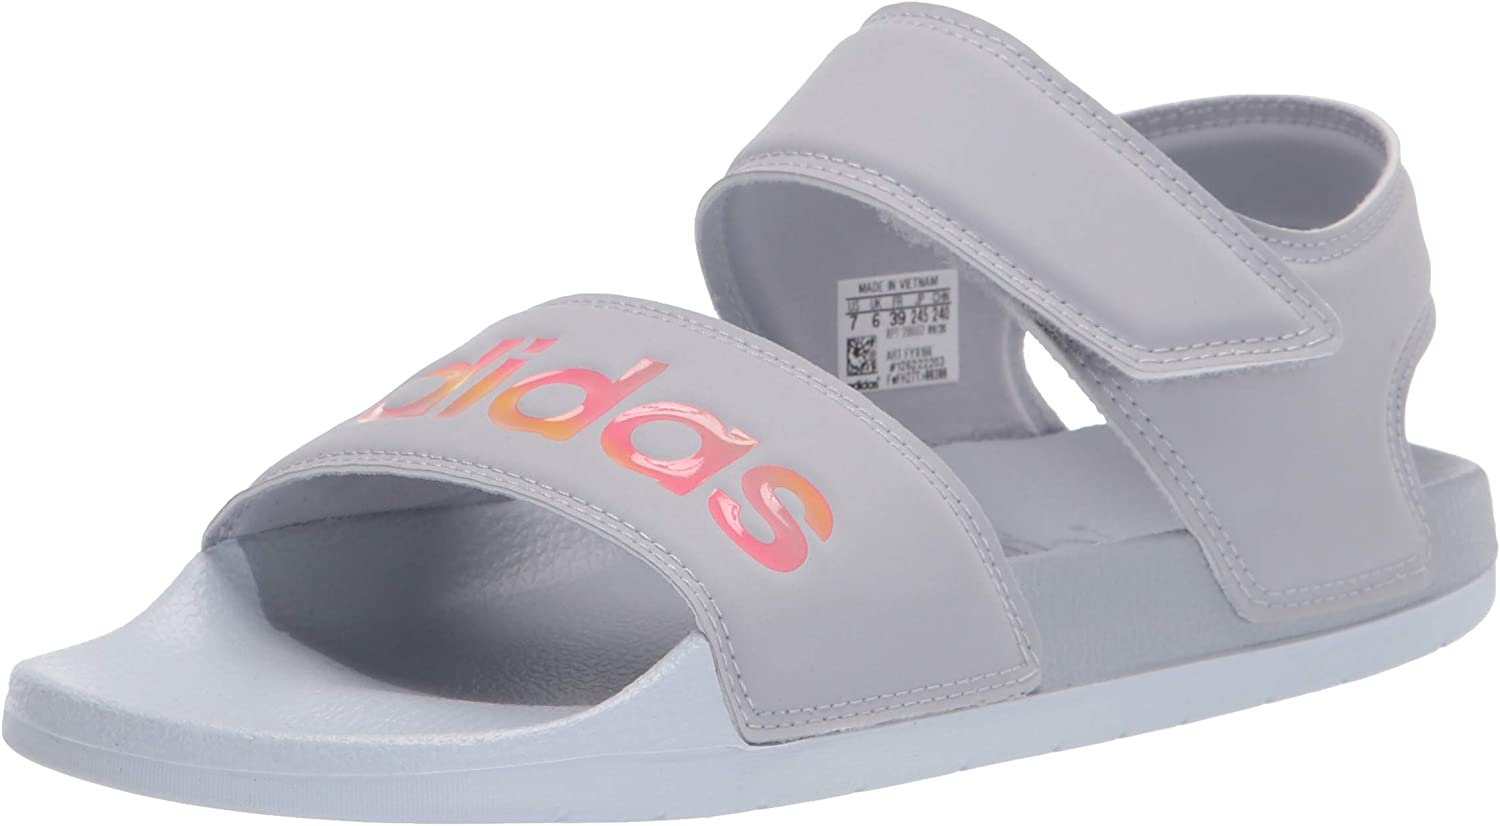 adidas Super beauty product restock quality top! Women's Adilette Beauty products Sandal Slide Iridescent Halo Hal Silver